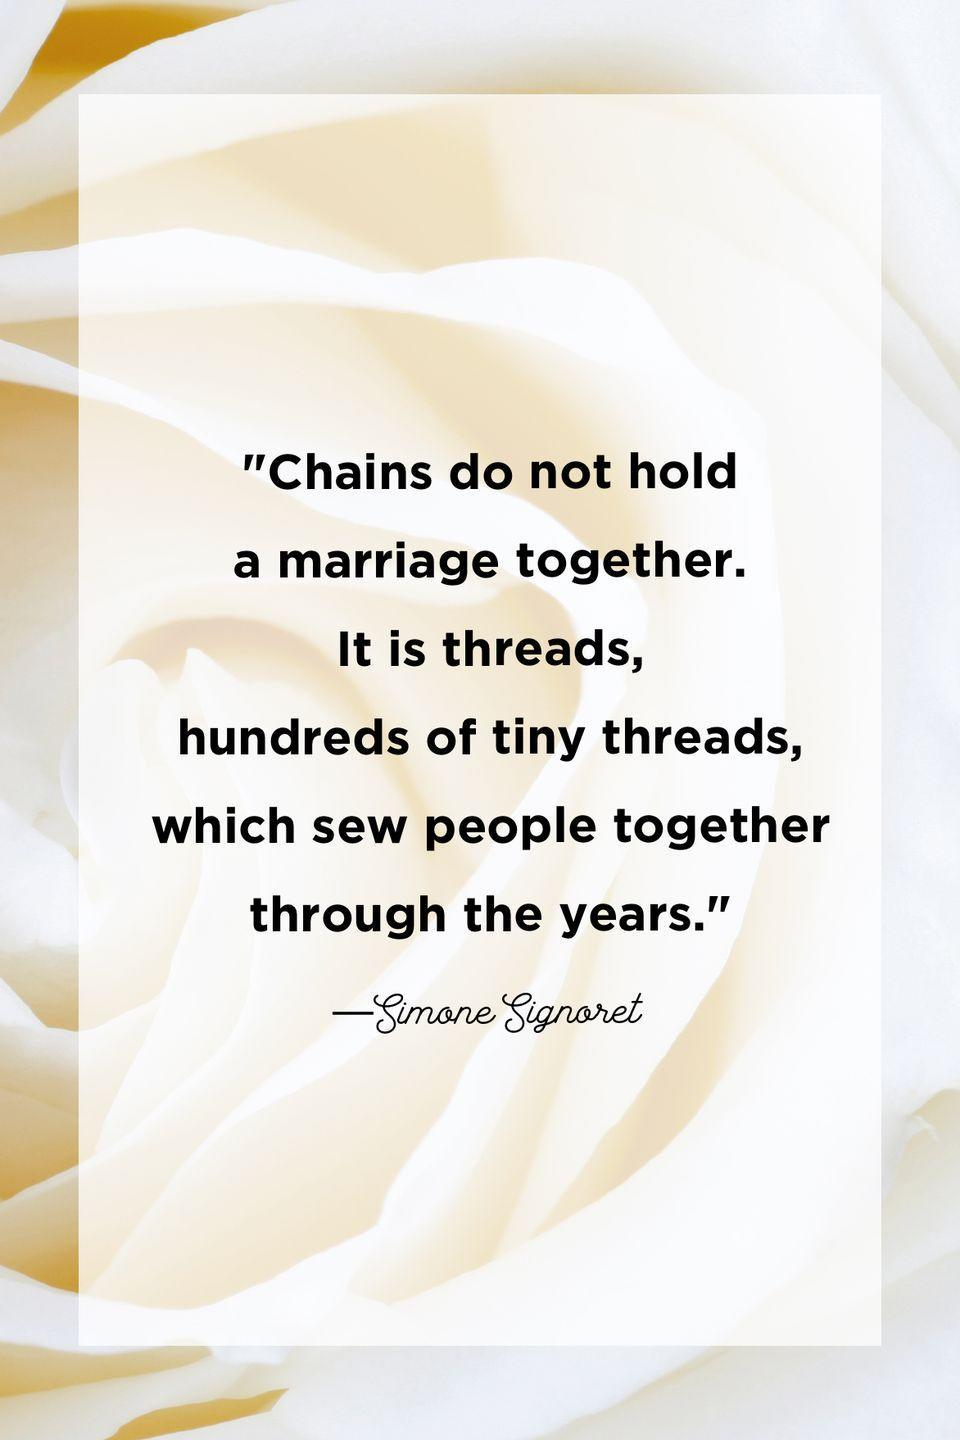 """<p>""""Chains do not hold a marriage together. It is threads, hundreds of tiny threads, which sew people together through the years.""""</p>"""